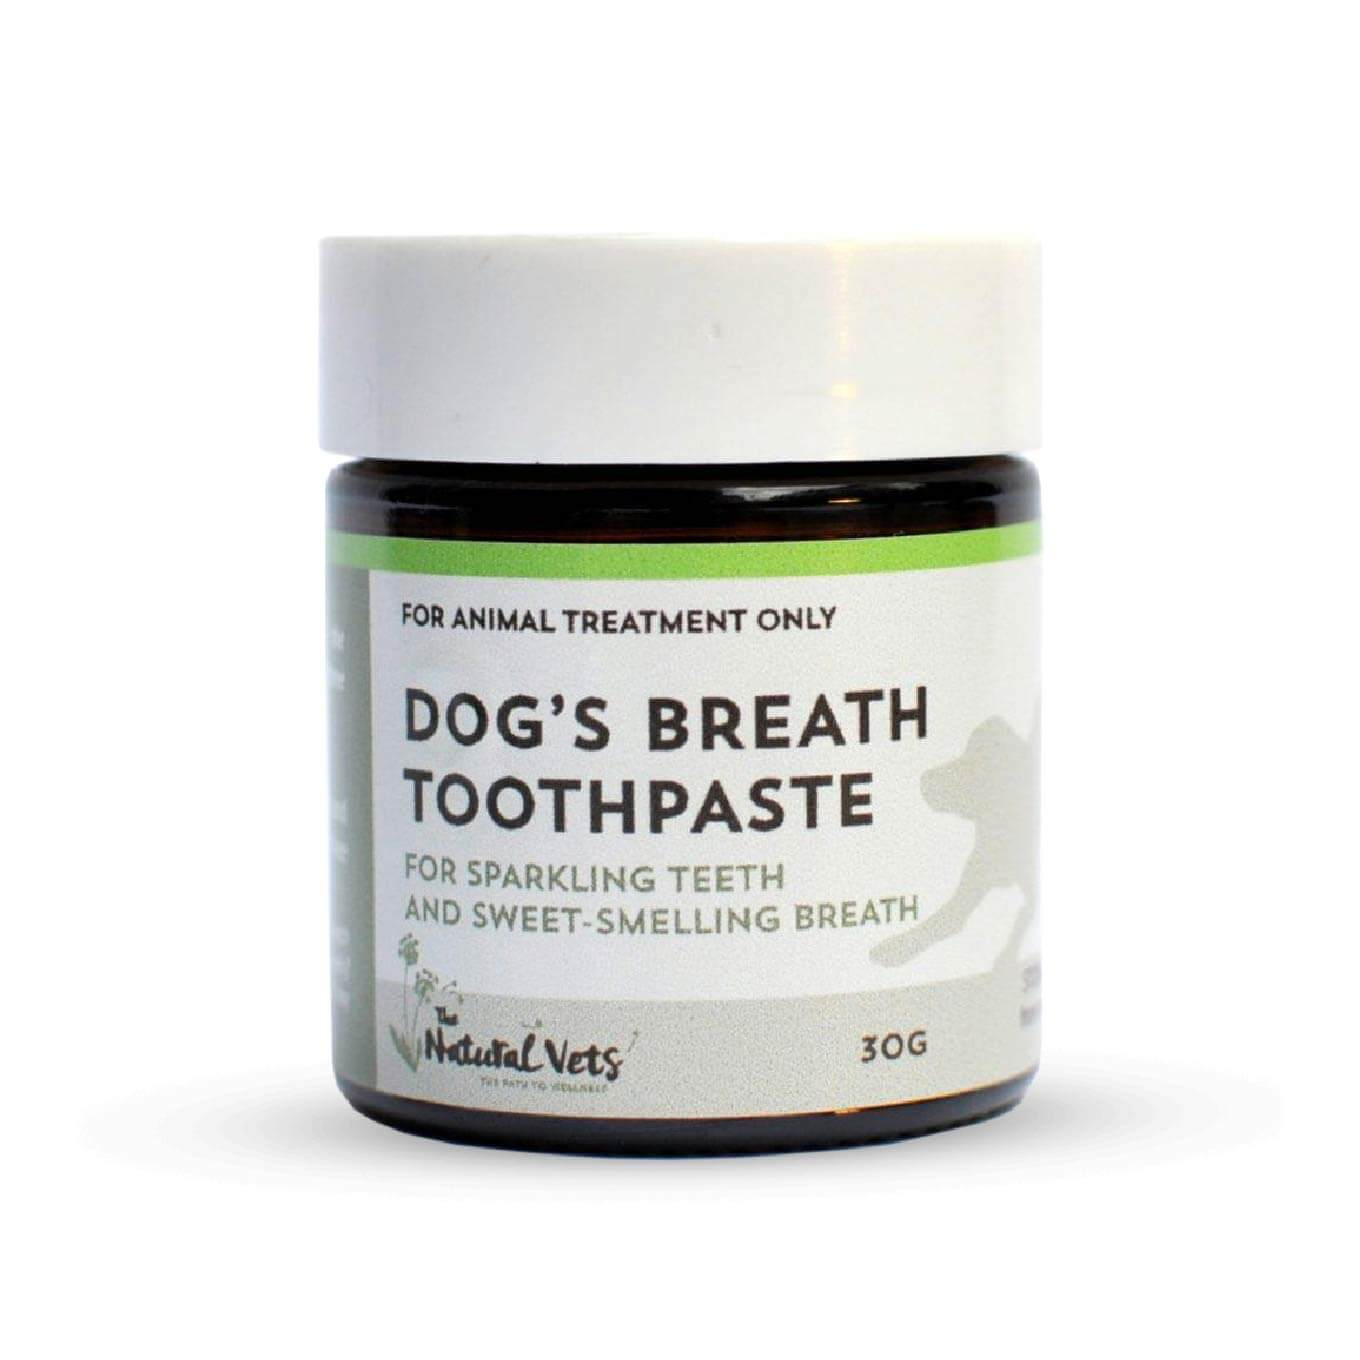 The Natural Vets Dog's Breath Toothpaste (30g)